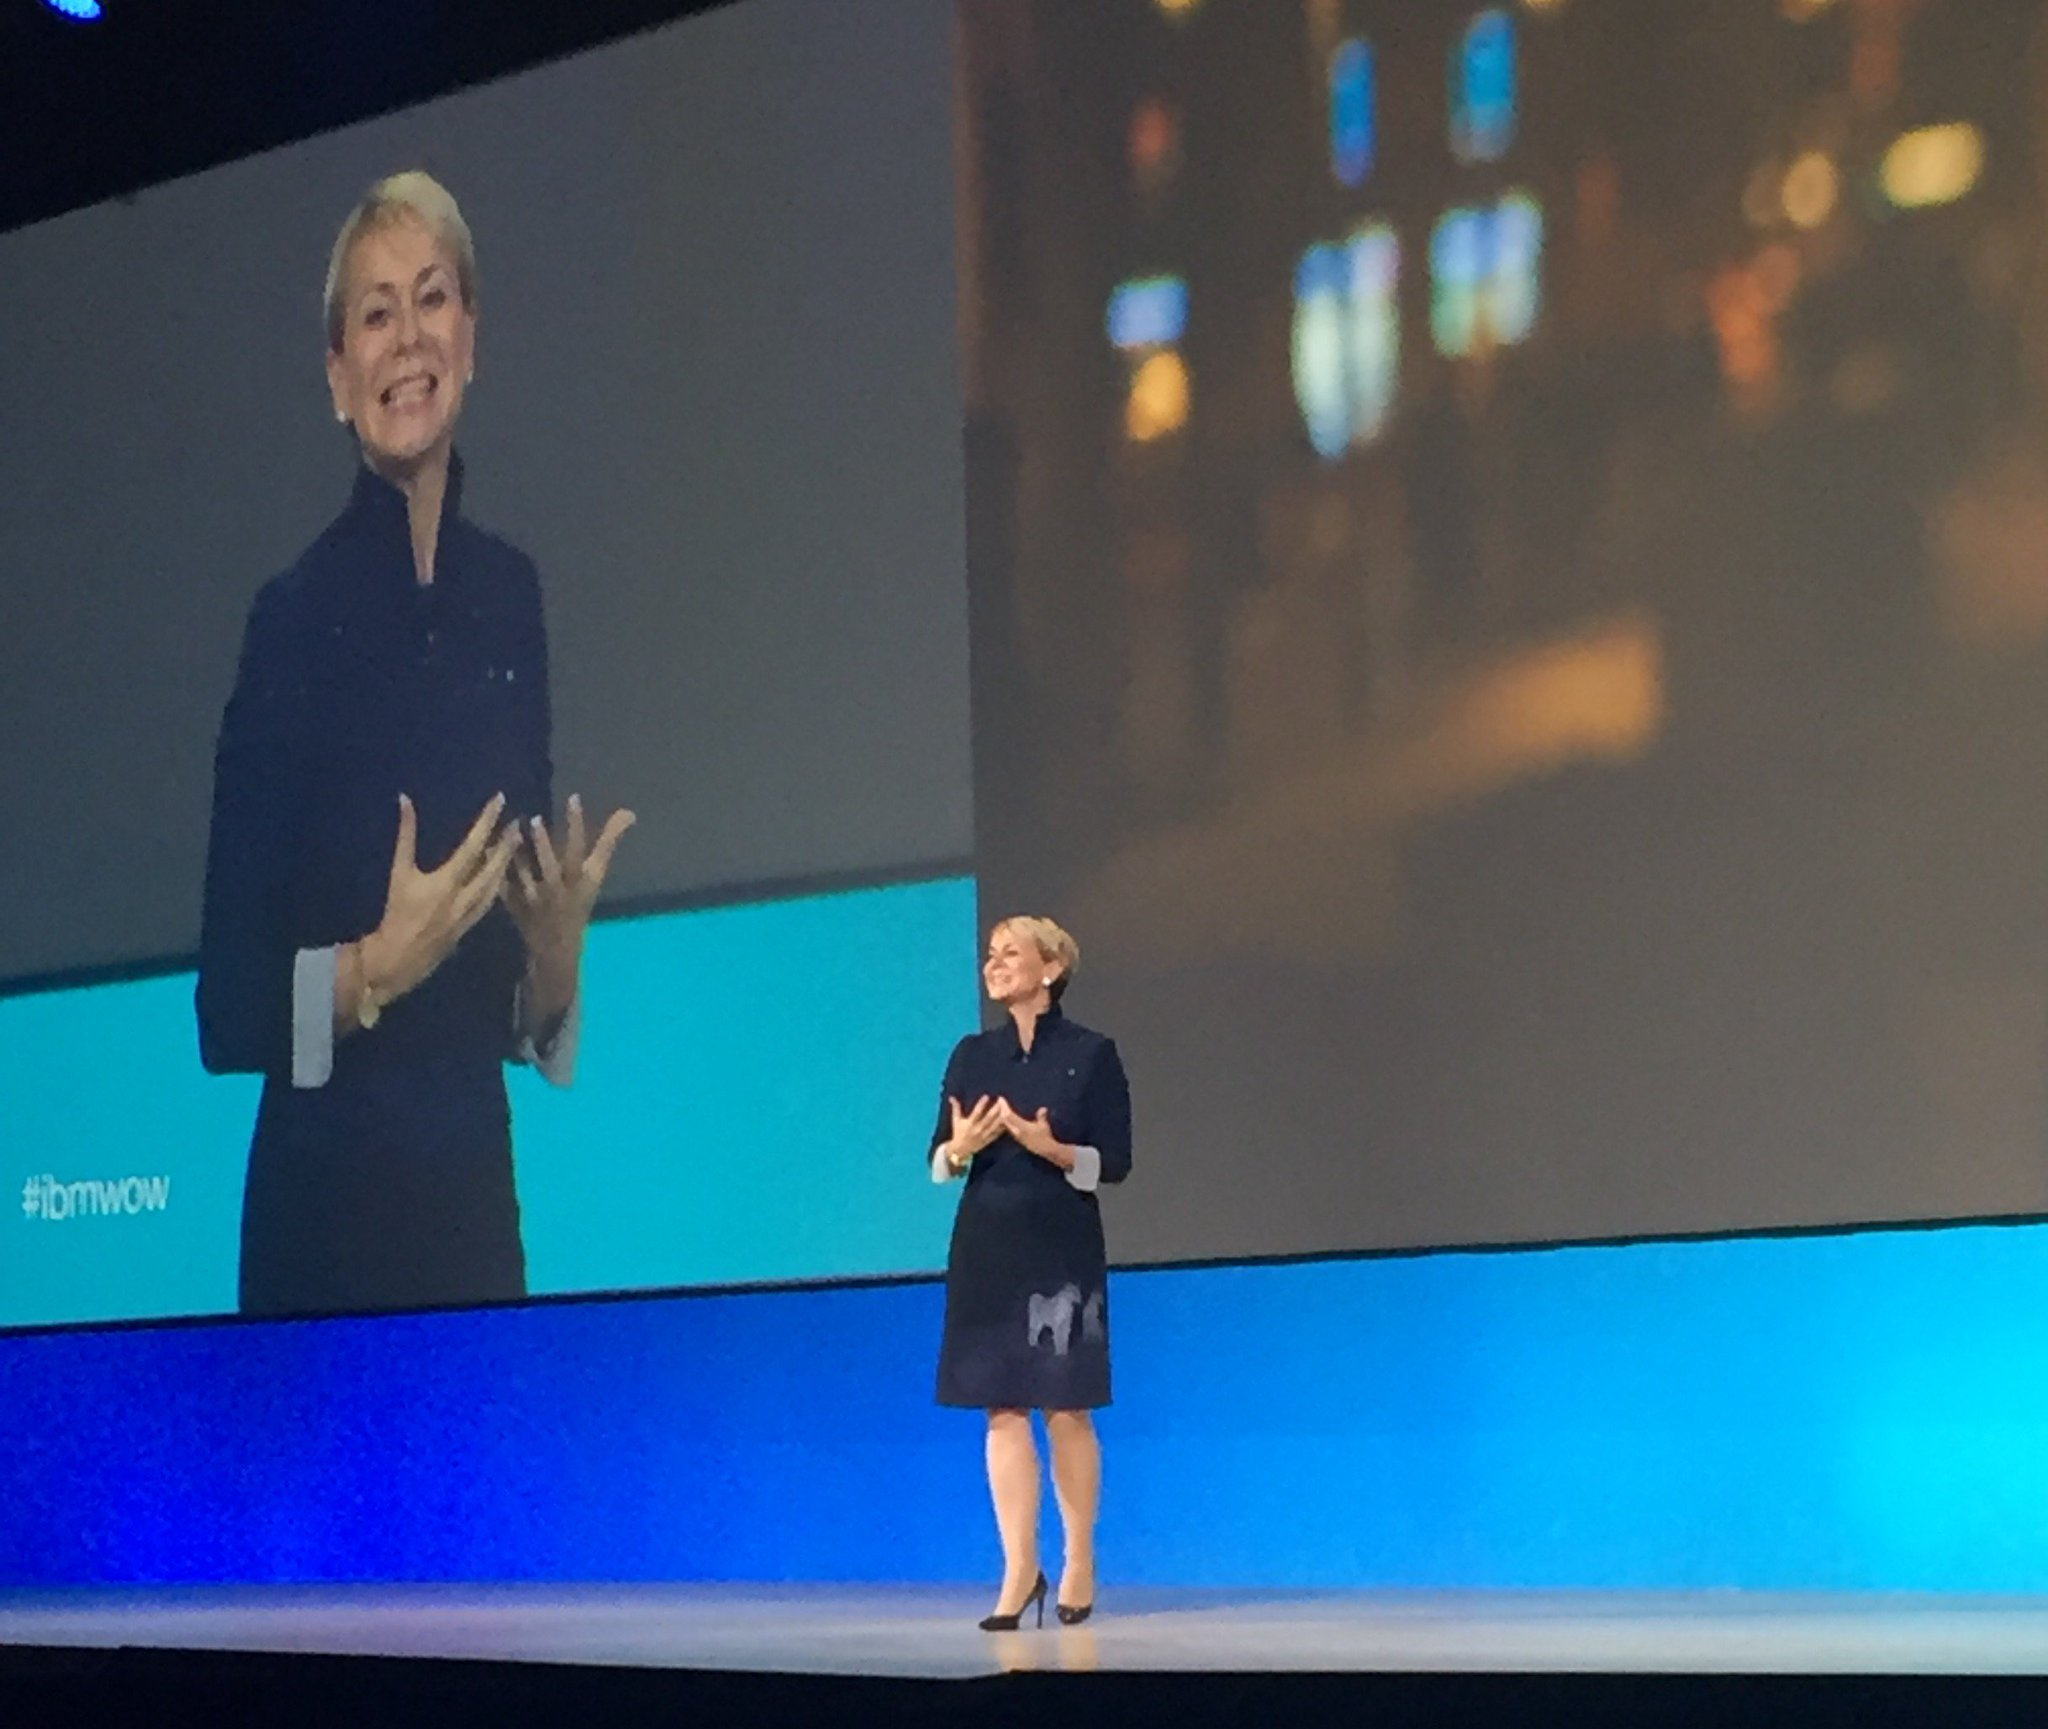 At the IoT keynote at #ibmwow. 'Cognitive computing will effect us in deeply personal ways' says @harrietgreen1. @IBMIoT #WatsonIoT https://t.co/Ypylk38BGt